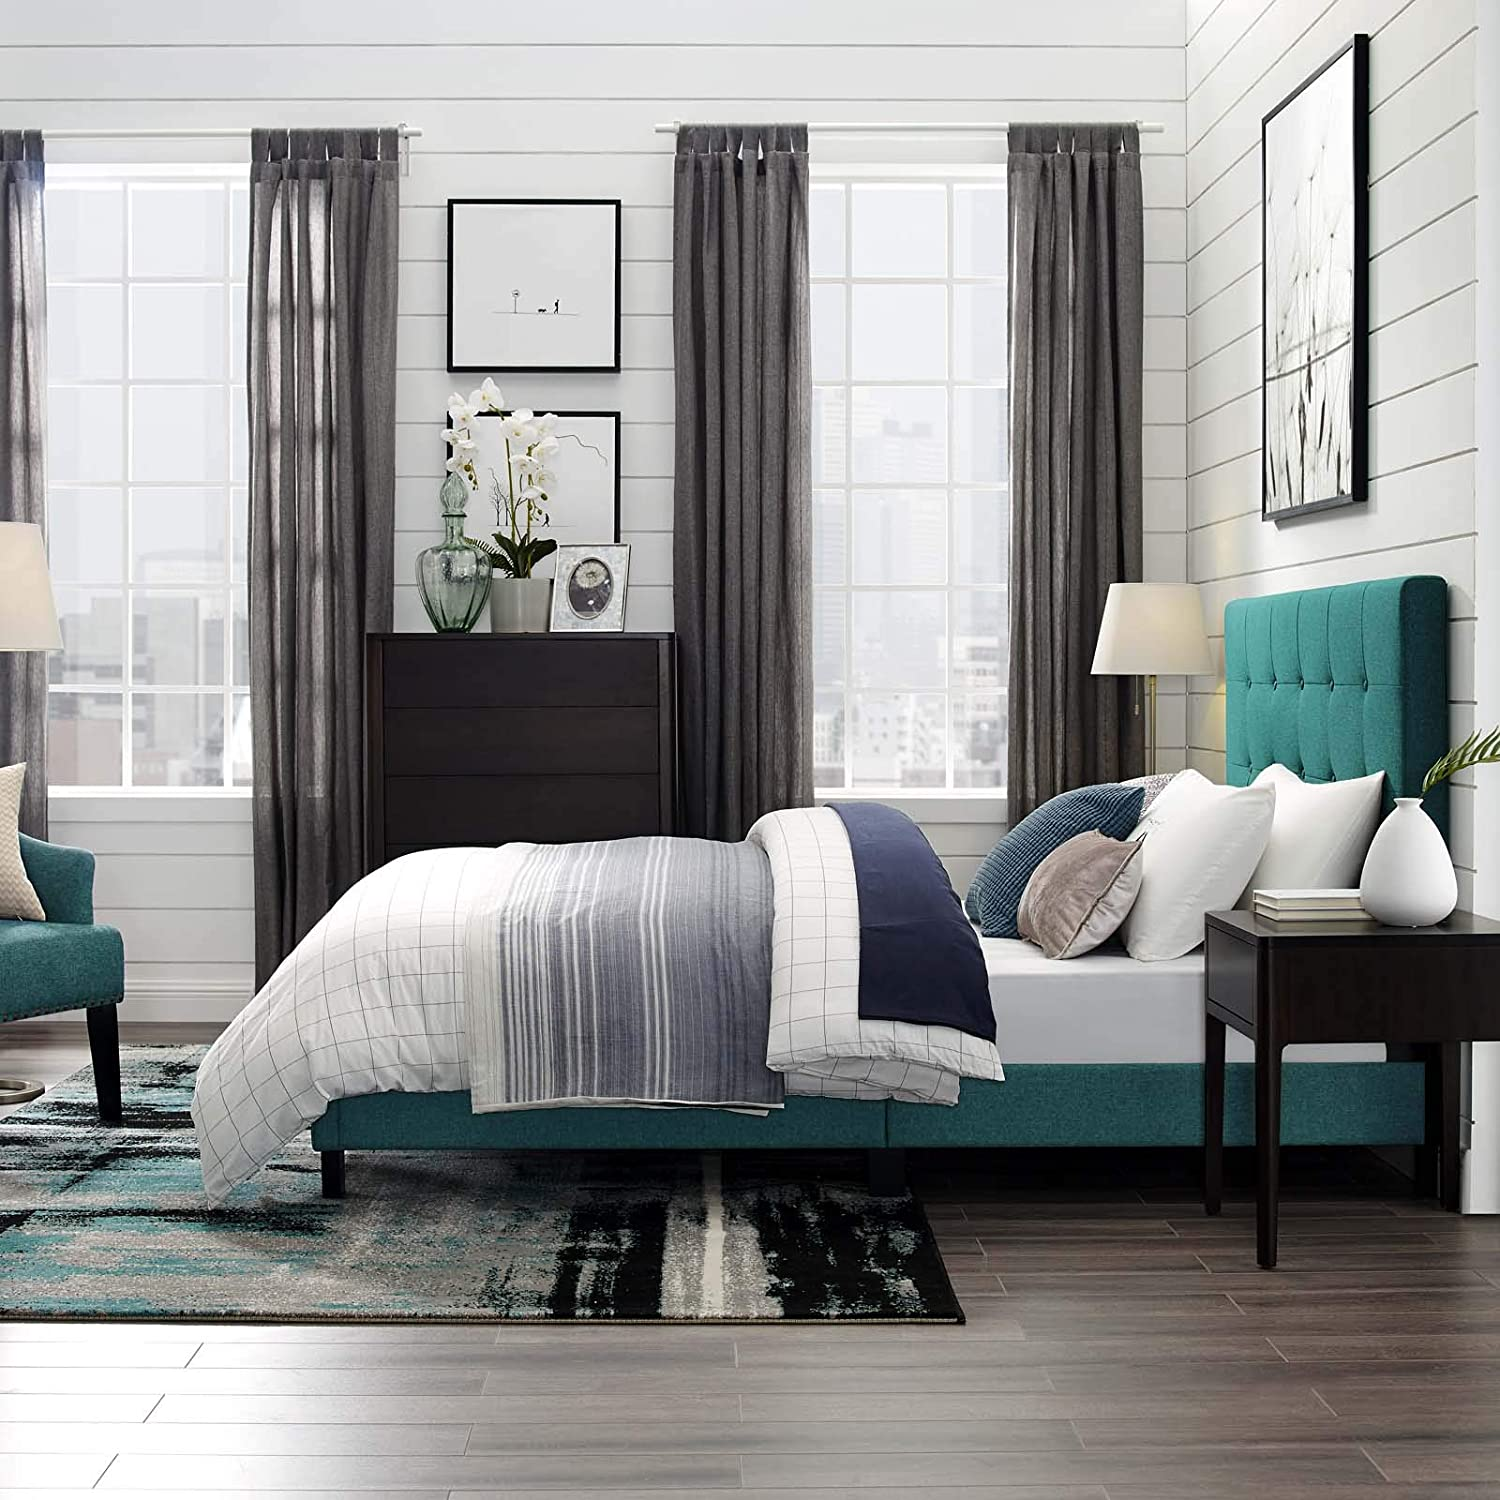 Modway Melanie Tufted Fabric Upholstered Queen Platform Bed in Teal